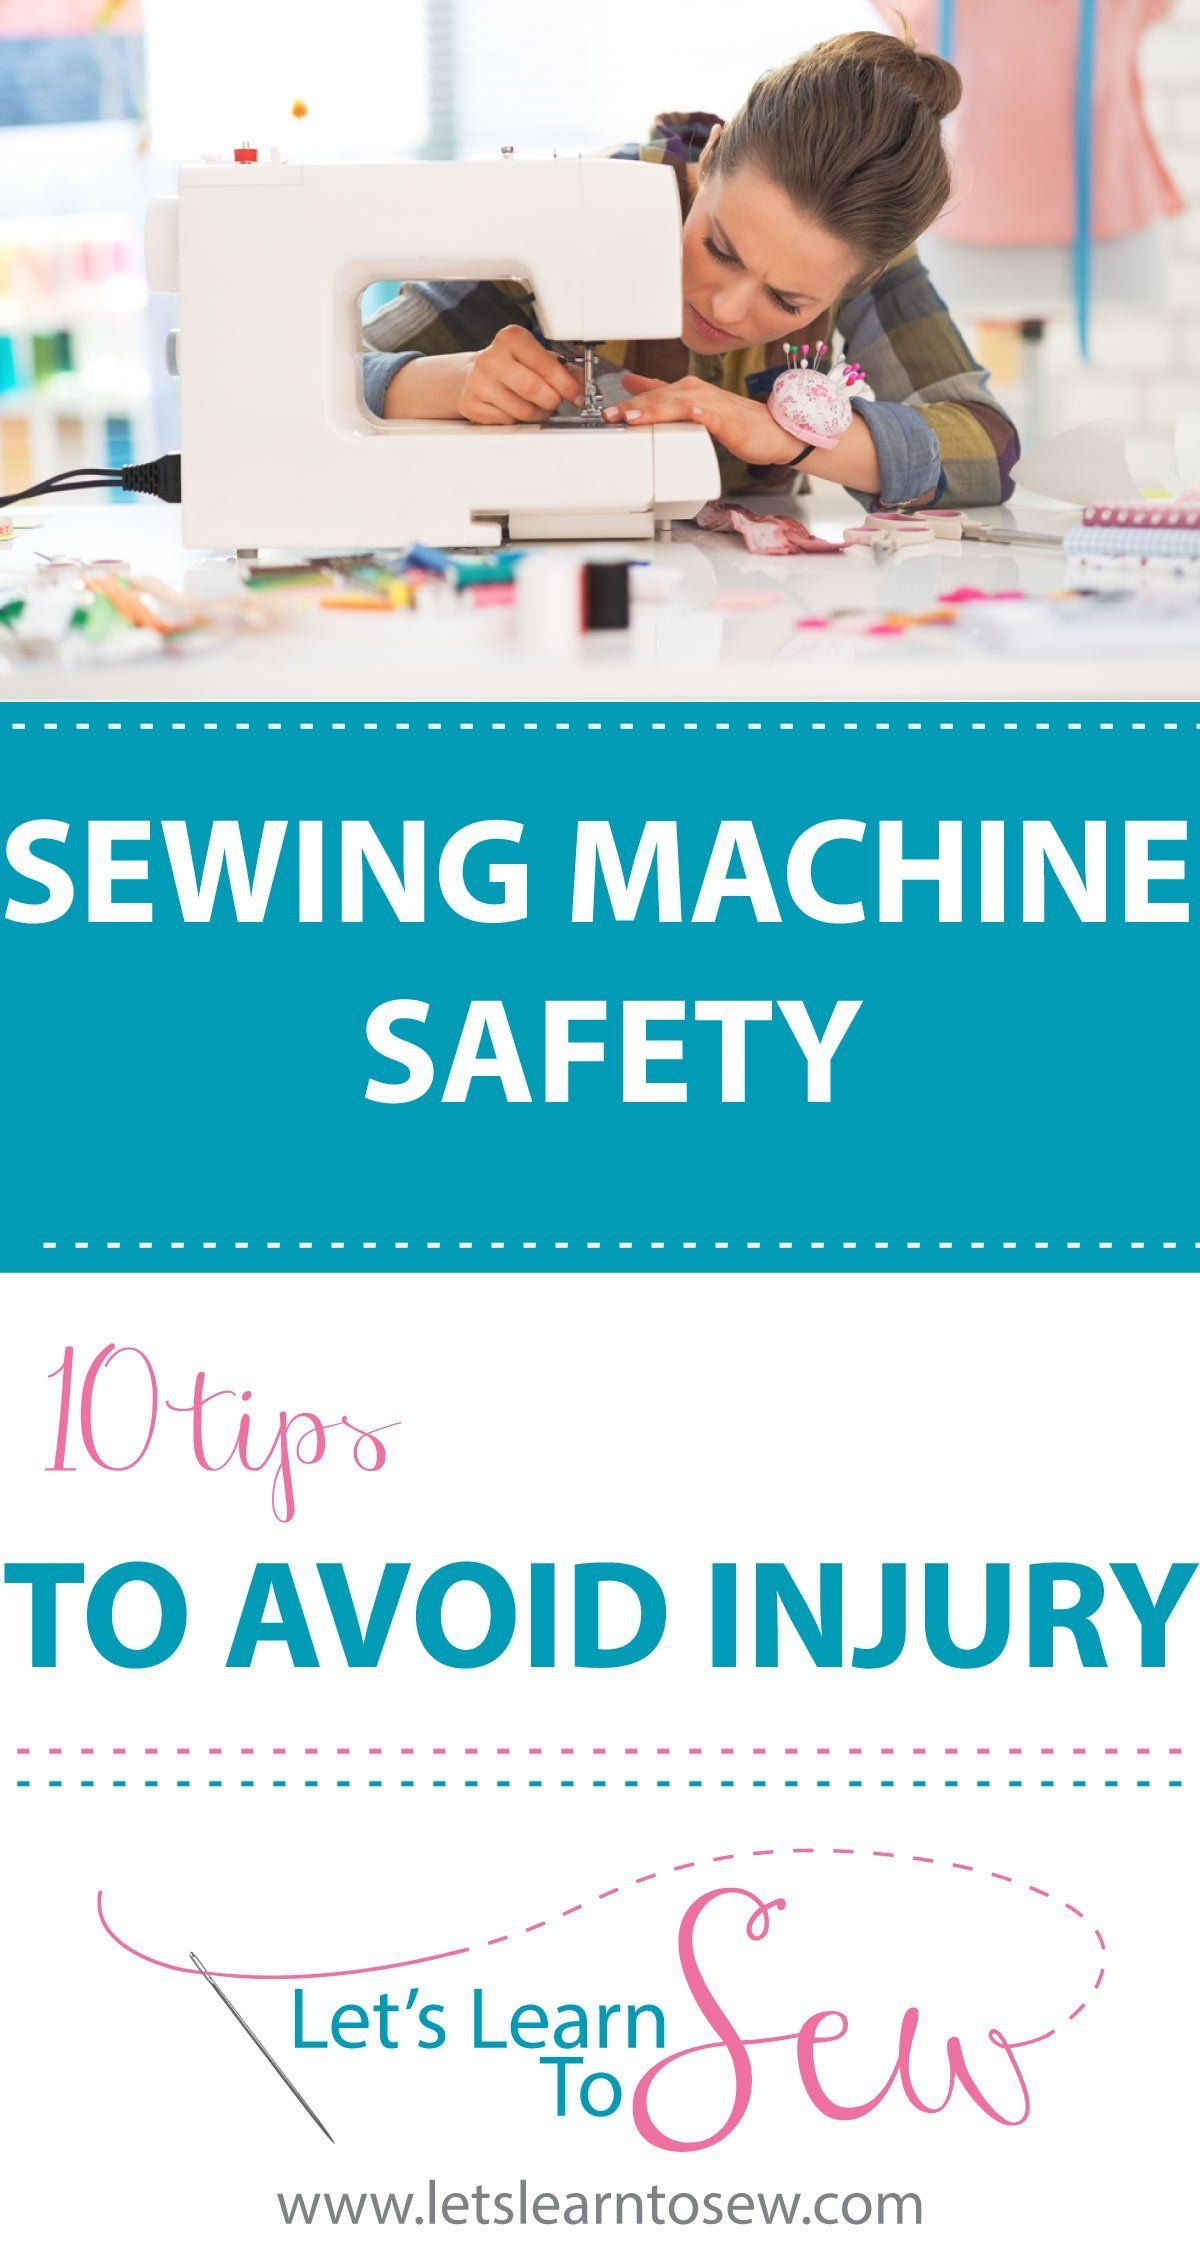 Pin By Ksyu Korchashkina On Sewing In 2020 Beginner Sewing Projects Easy Easy Sewing Projects Sewing Projects For Beginners